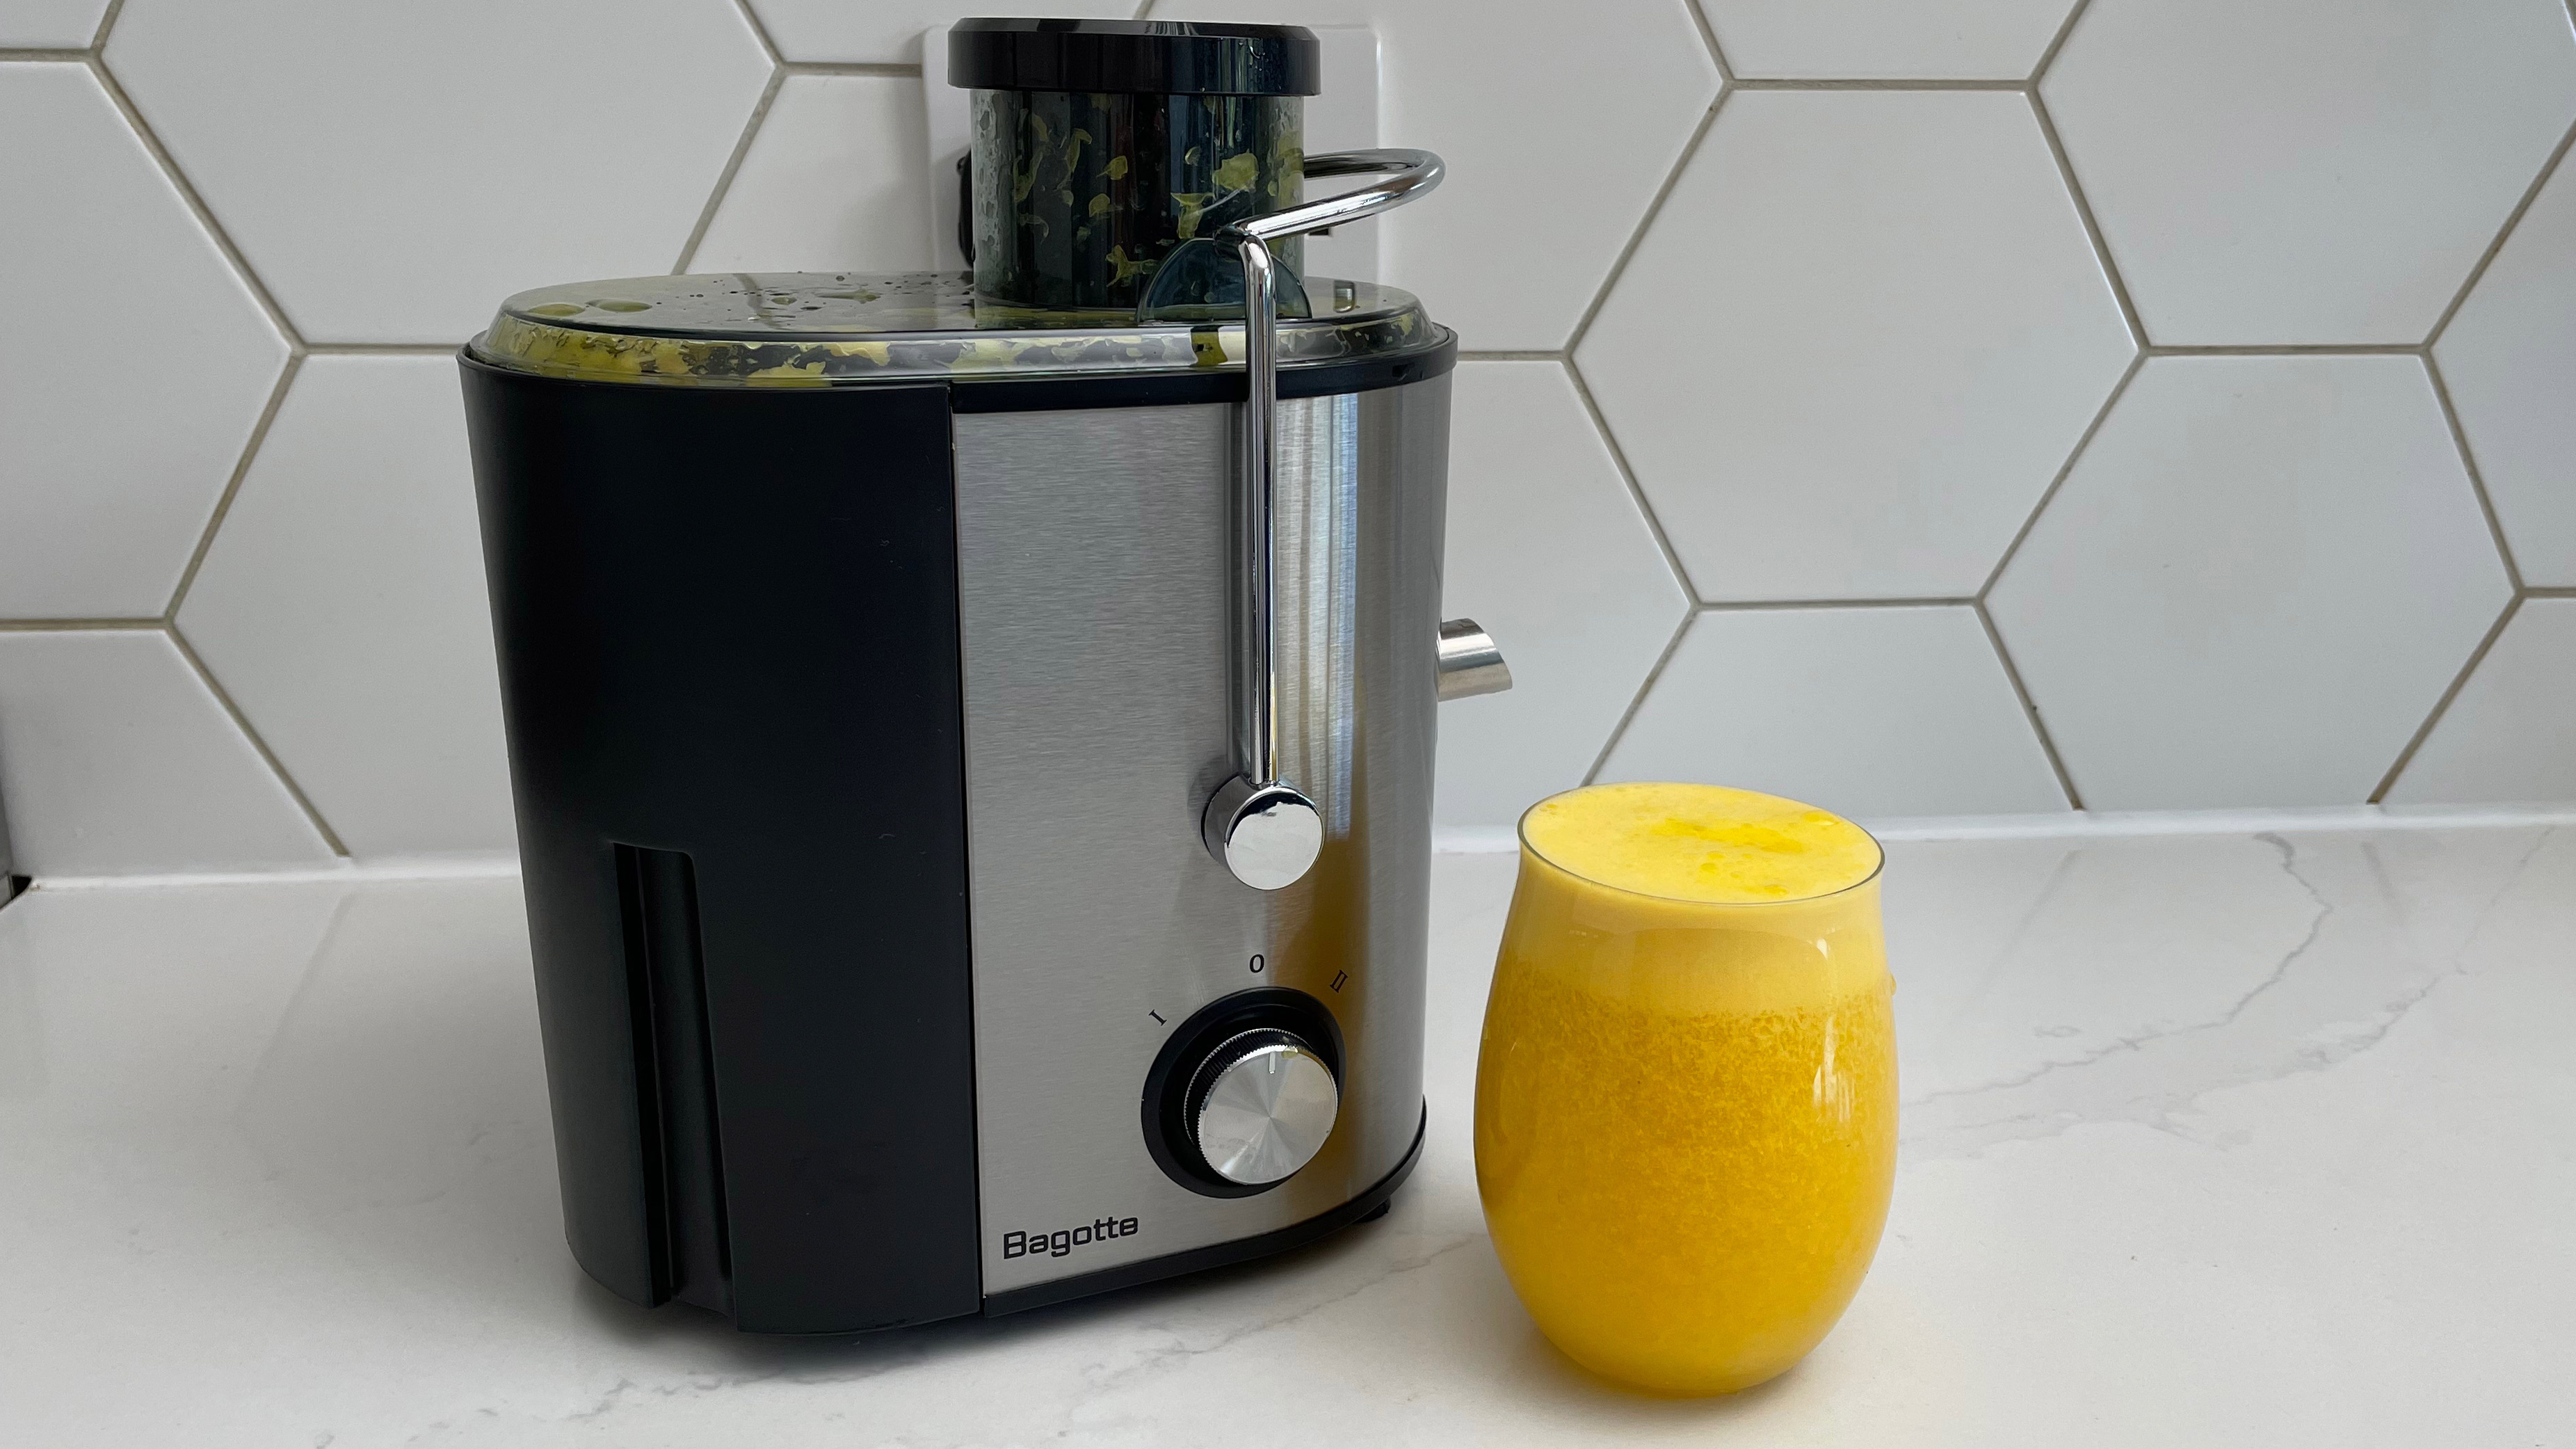 The Bagotte DB-001 juicer on a kitchen countertop with a glass of juice prepeared in the appliance